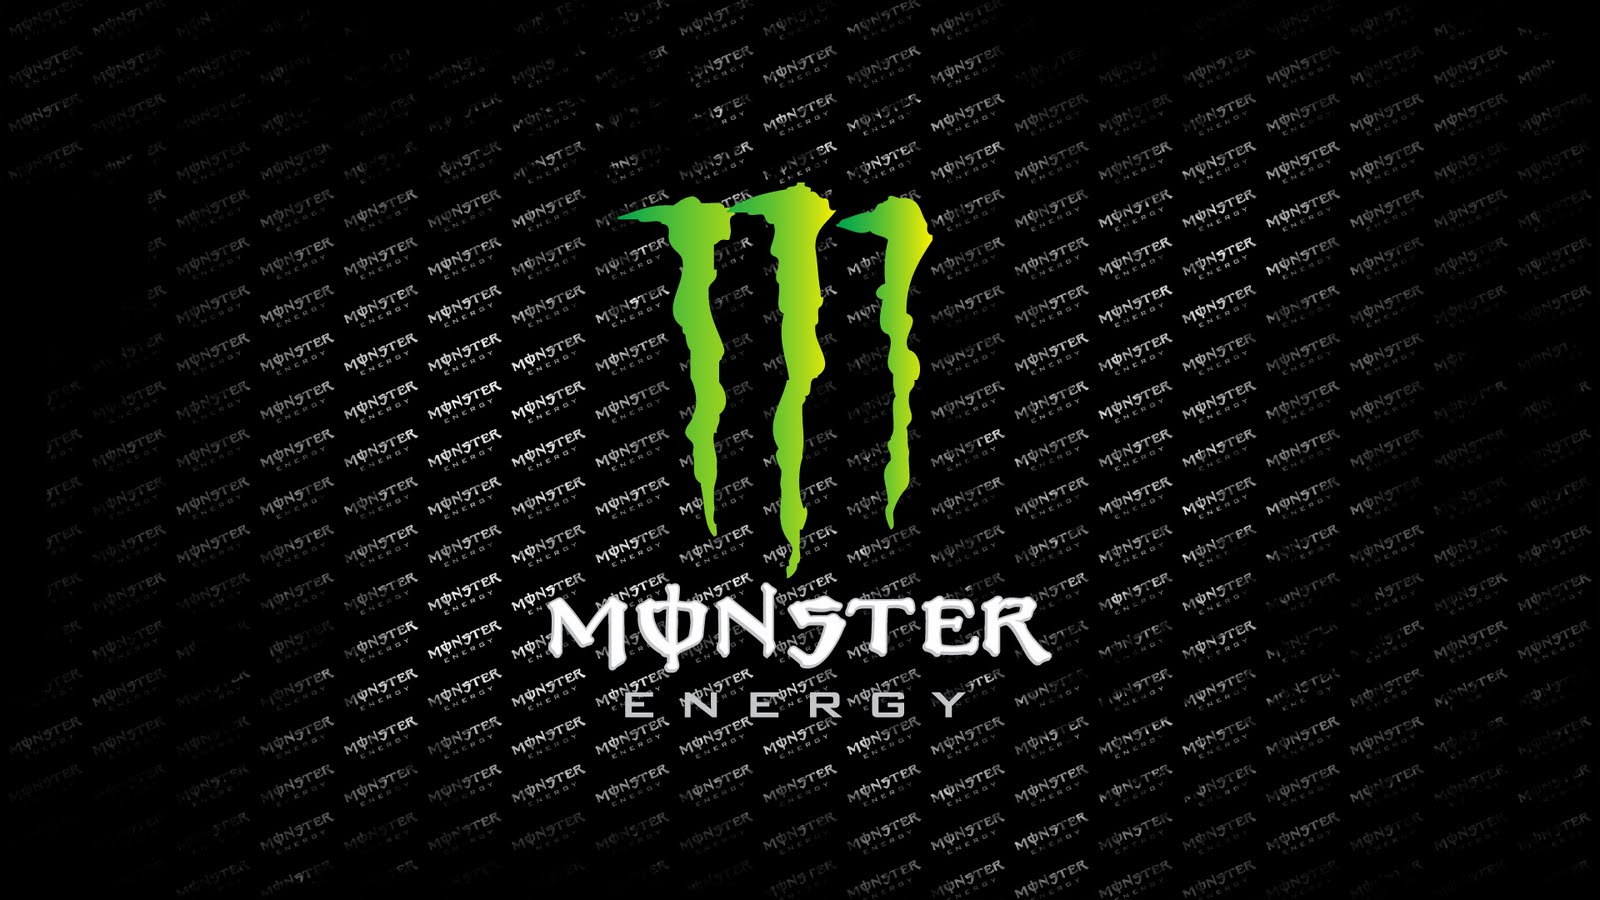 H.D. Wallpapers: Monster Energy Logo HD Wallpaper